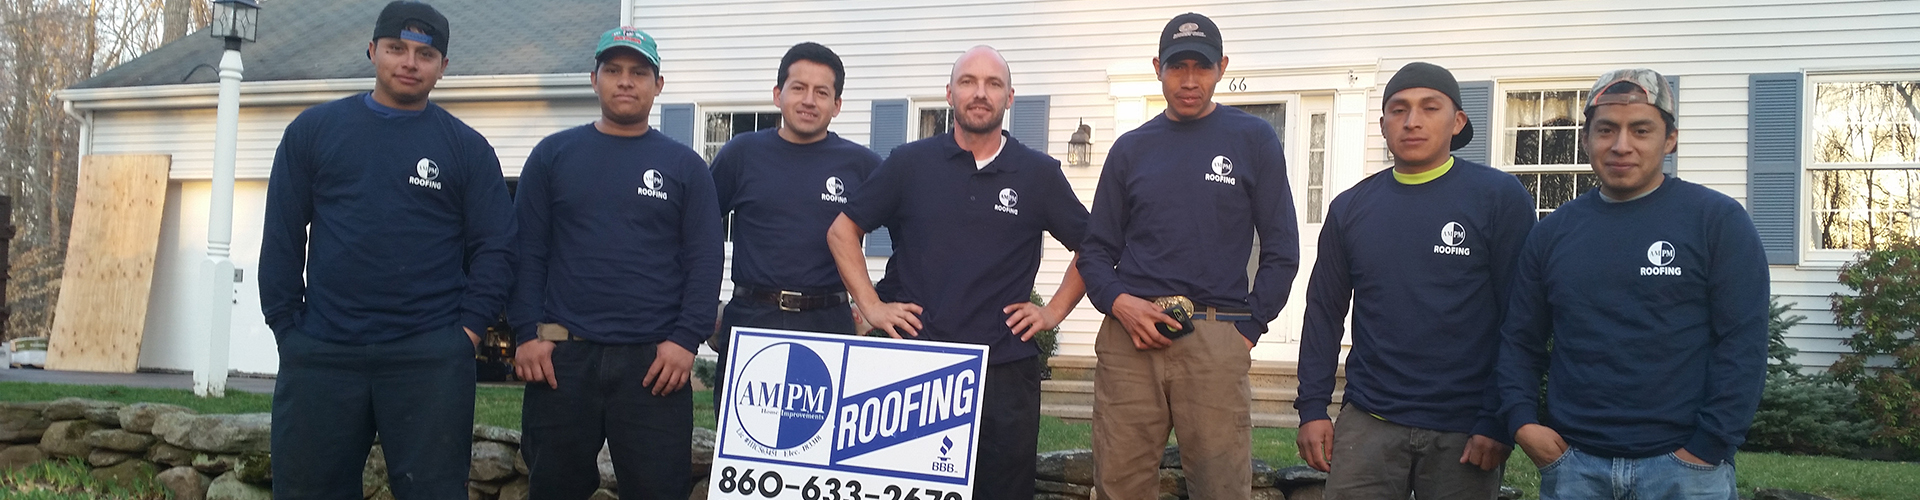 roofing companies in ct